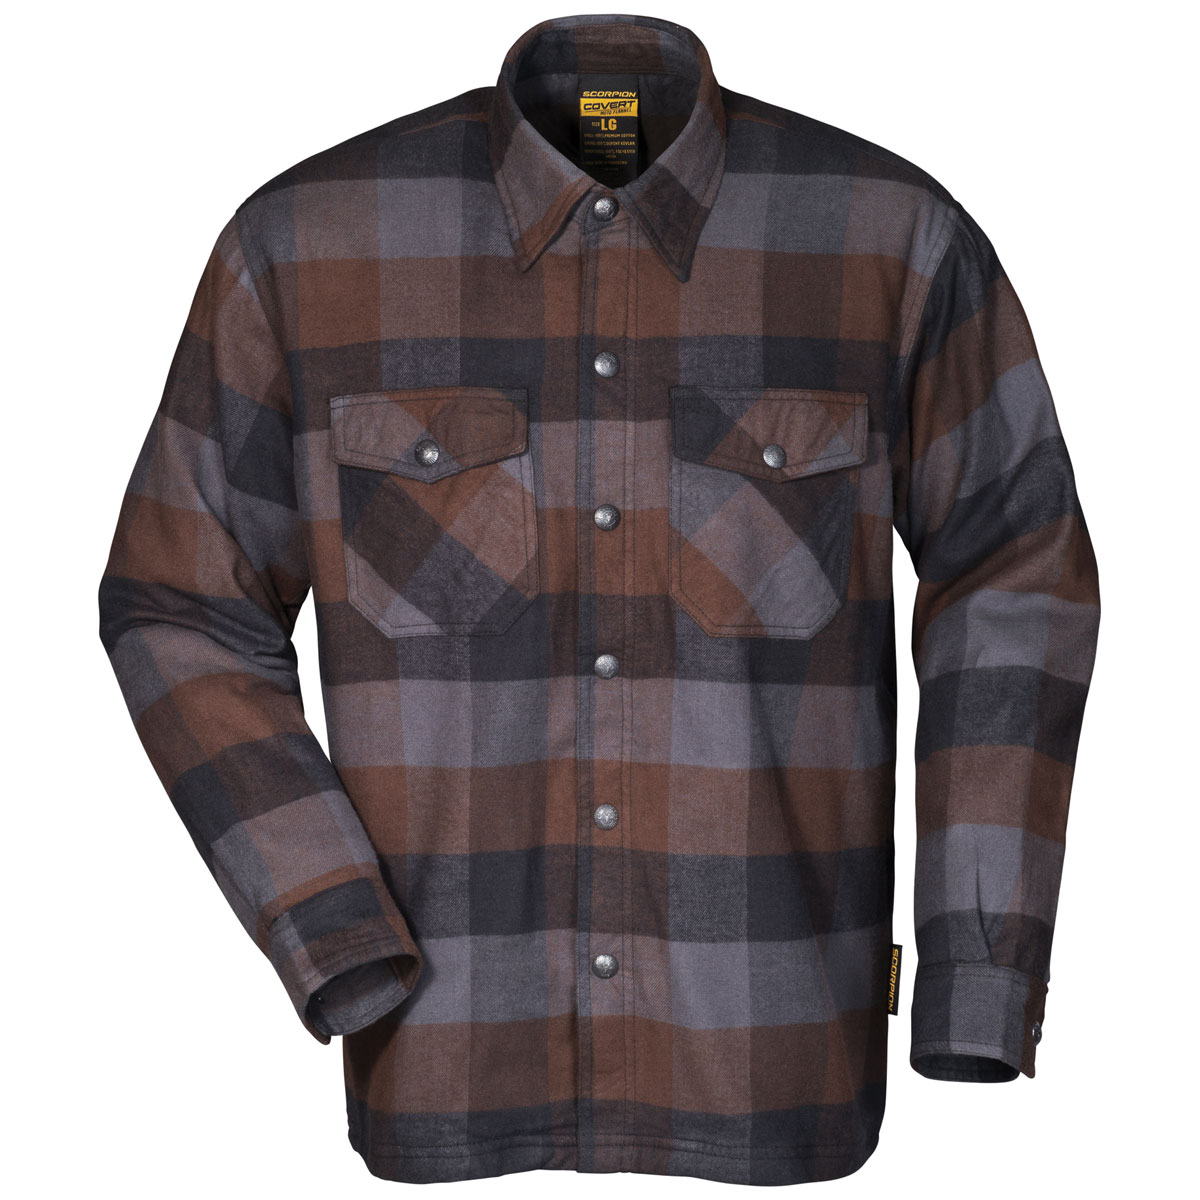 Scorpion EXO Men's Covert Black/Brown/Gray Flannel Shirt